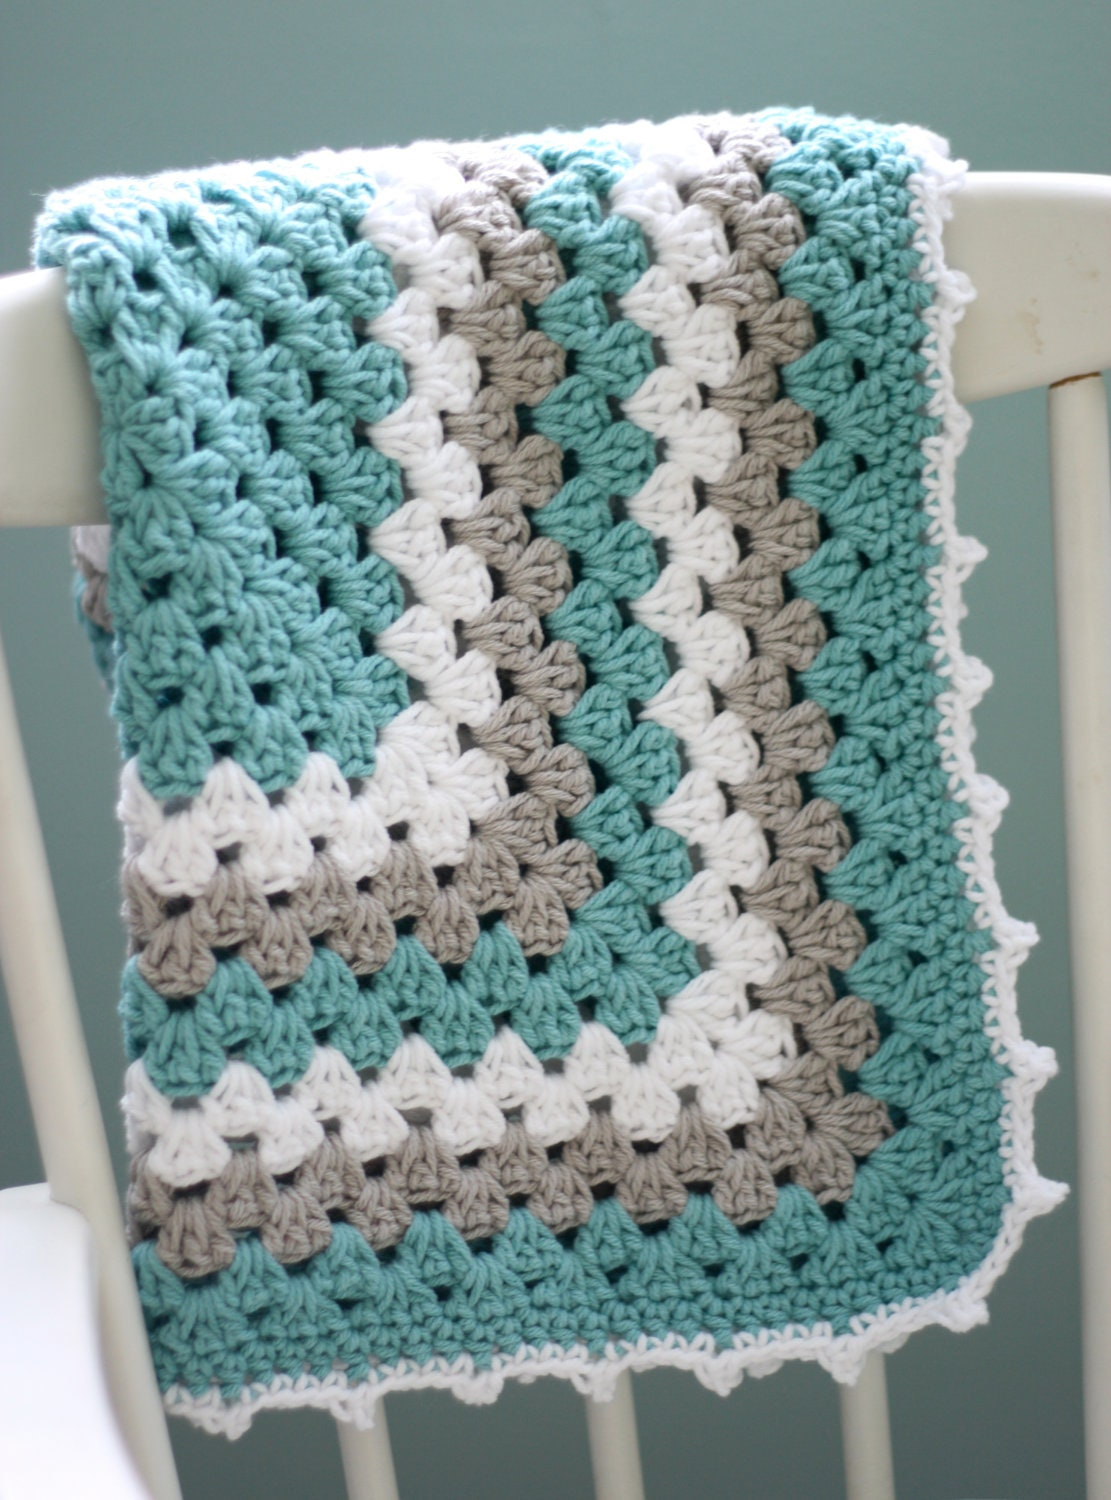 18 Free Crochet Baby Blanket Patterns. Need a gift for your next baby shower? Try one of these FREE baby blankie patterns to crochet for boys and girls. | TLYCBlog.com